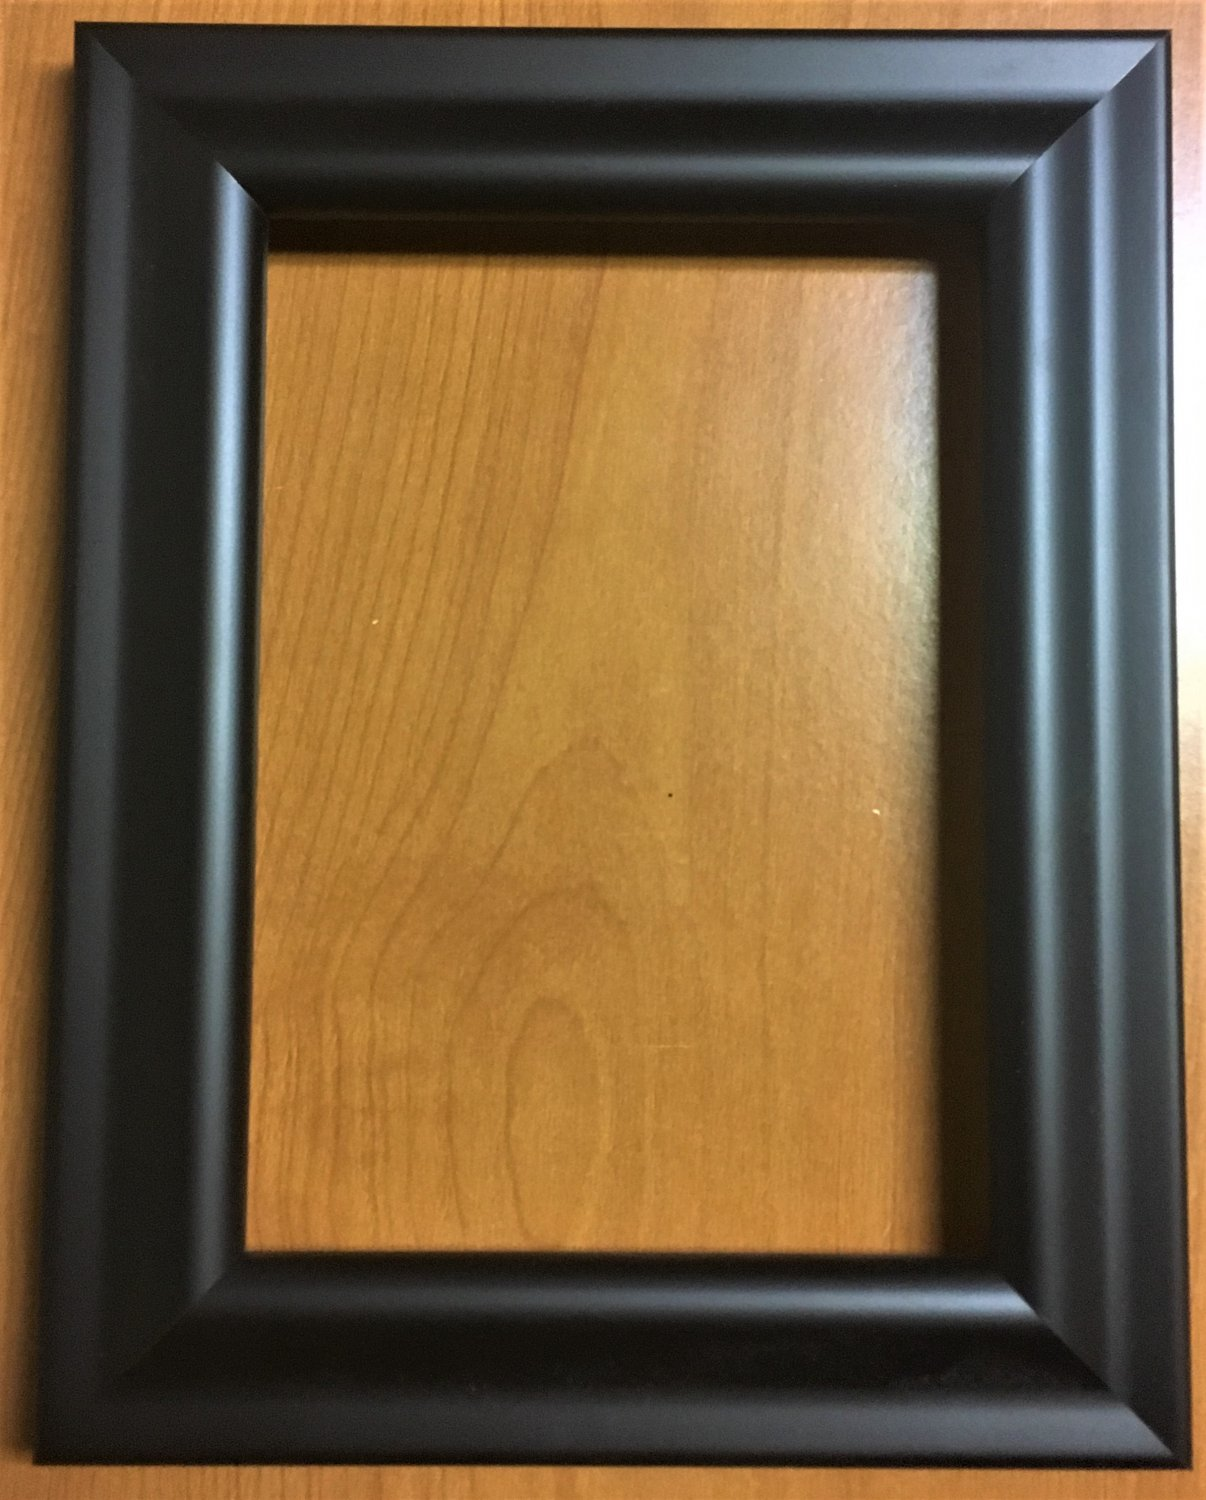 "16 x 16 1-1/4"" Matt Black Picture Frame F052"